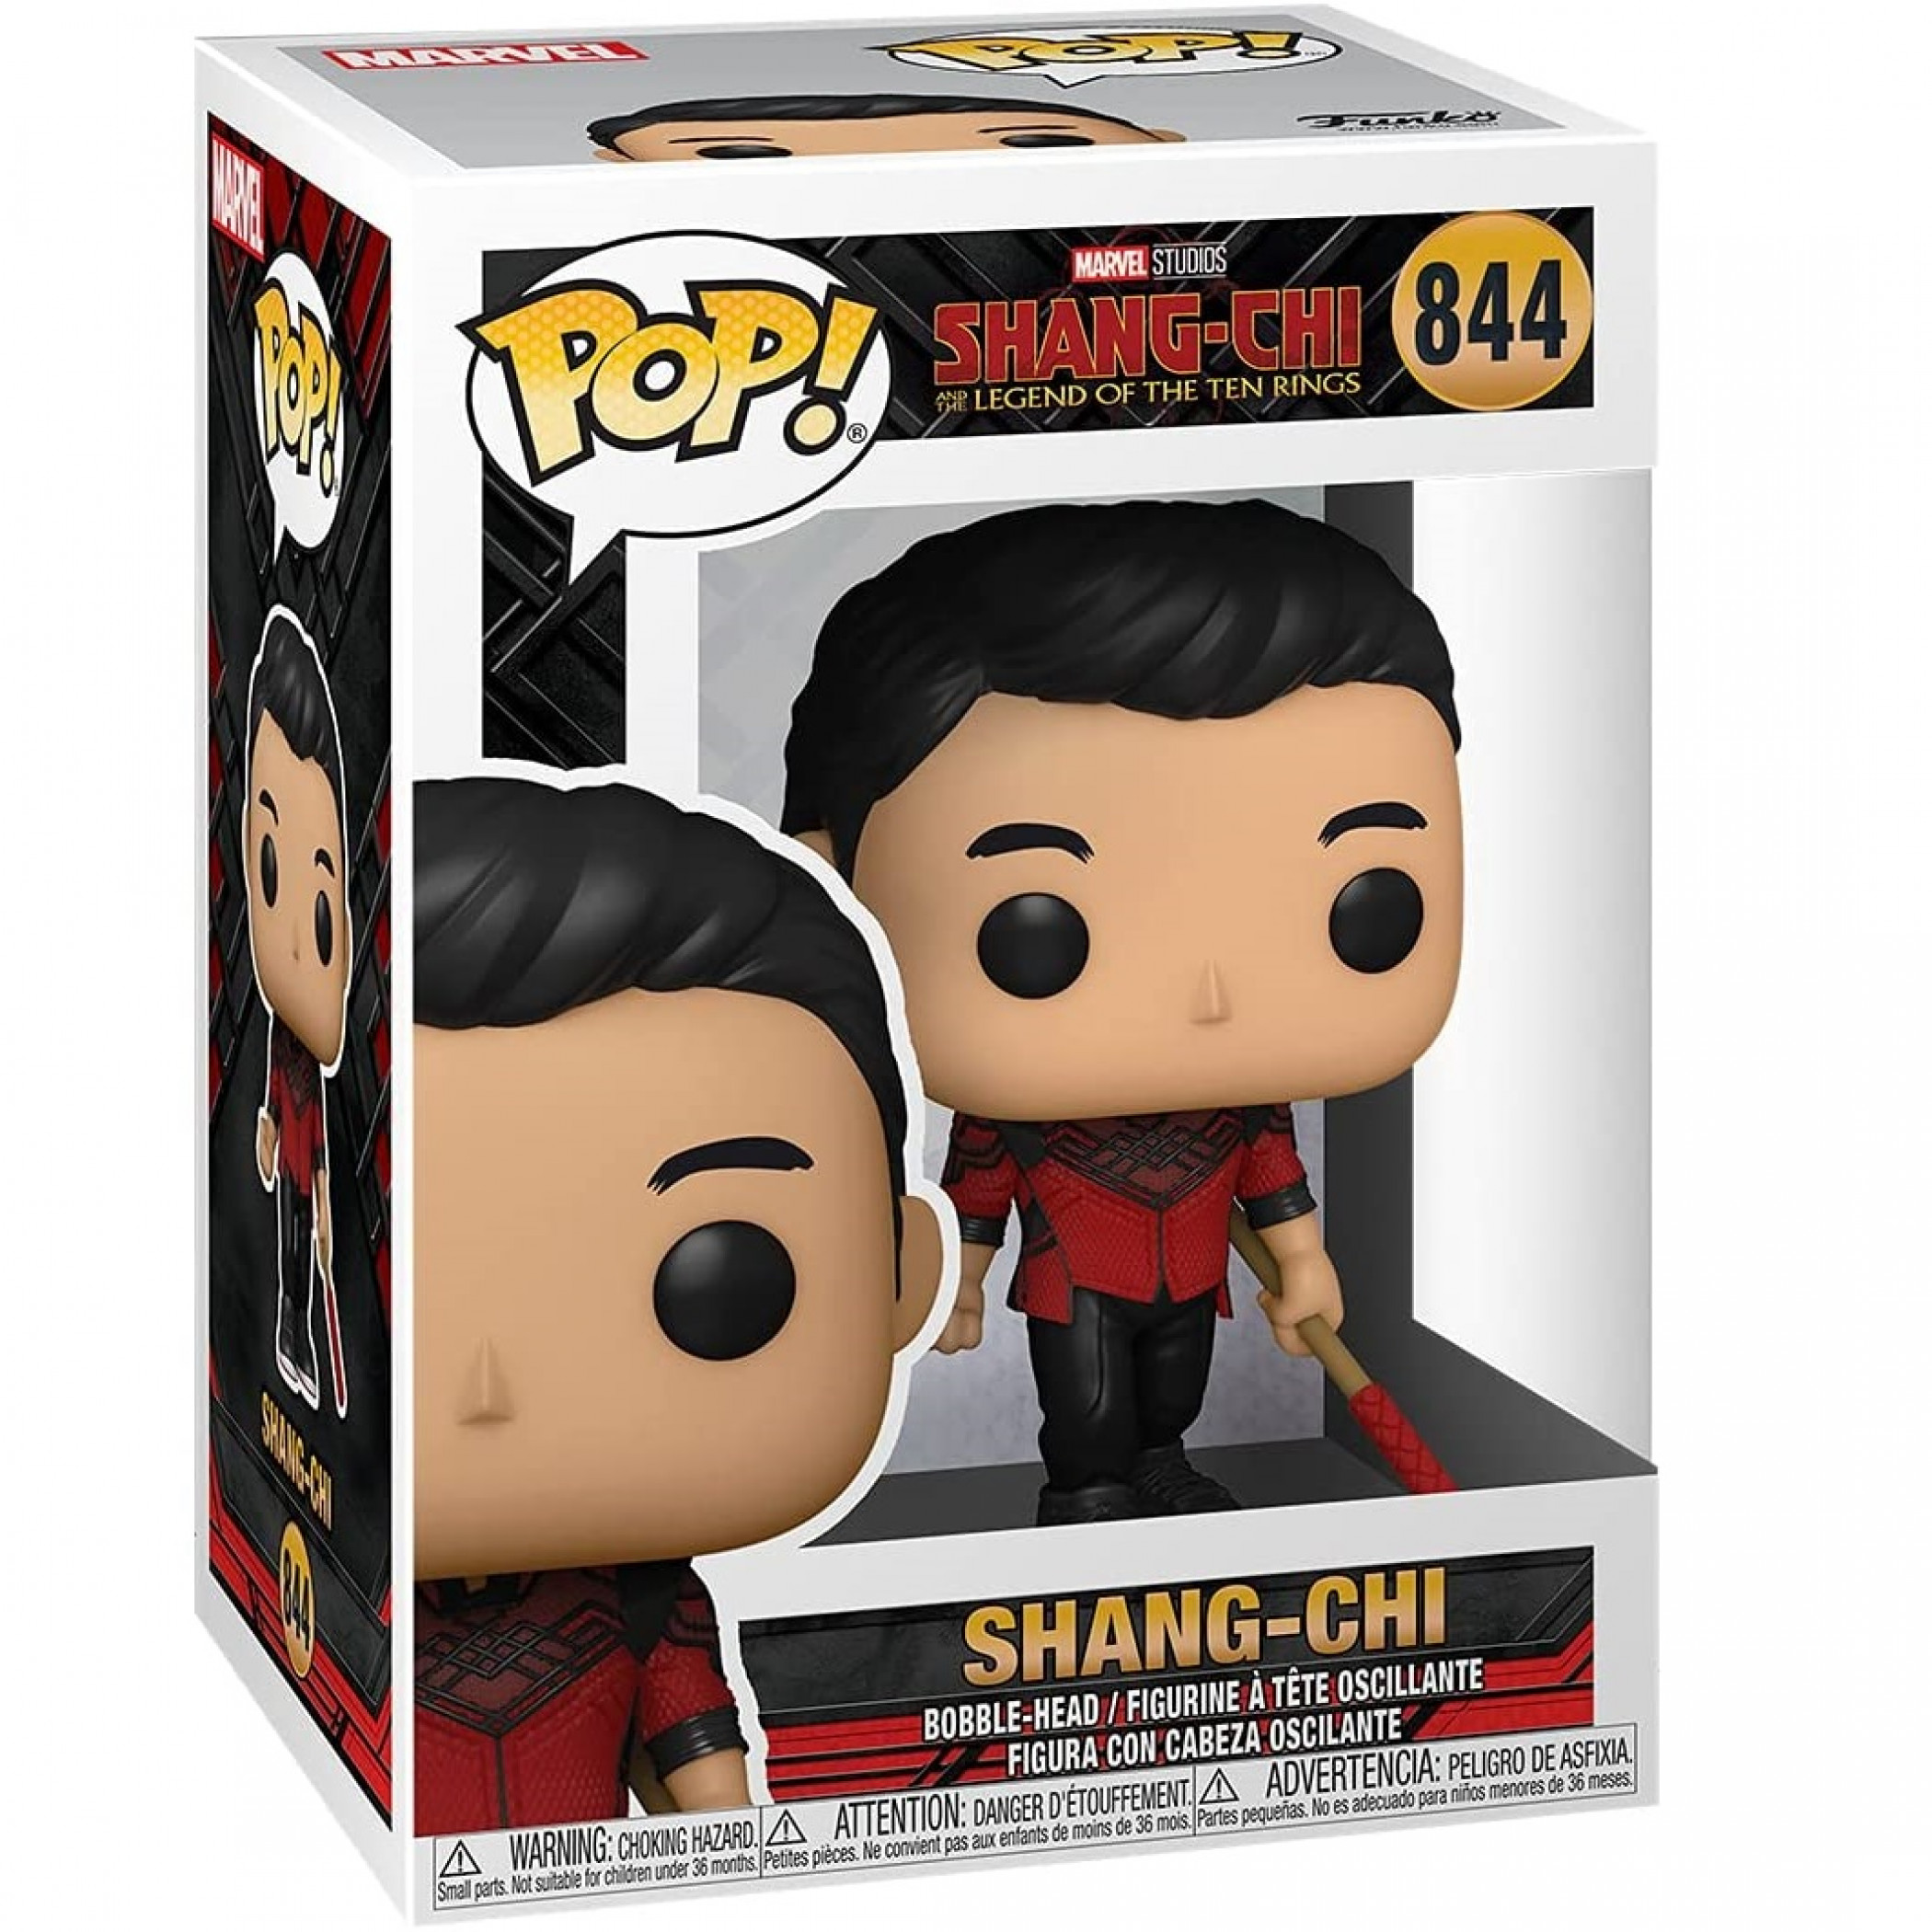 Shang-Chi and the Legends of the Ten Rings Shang-Chi Funko Pop! Vinyl Figure